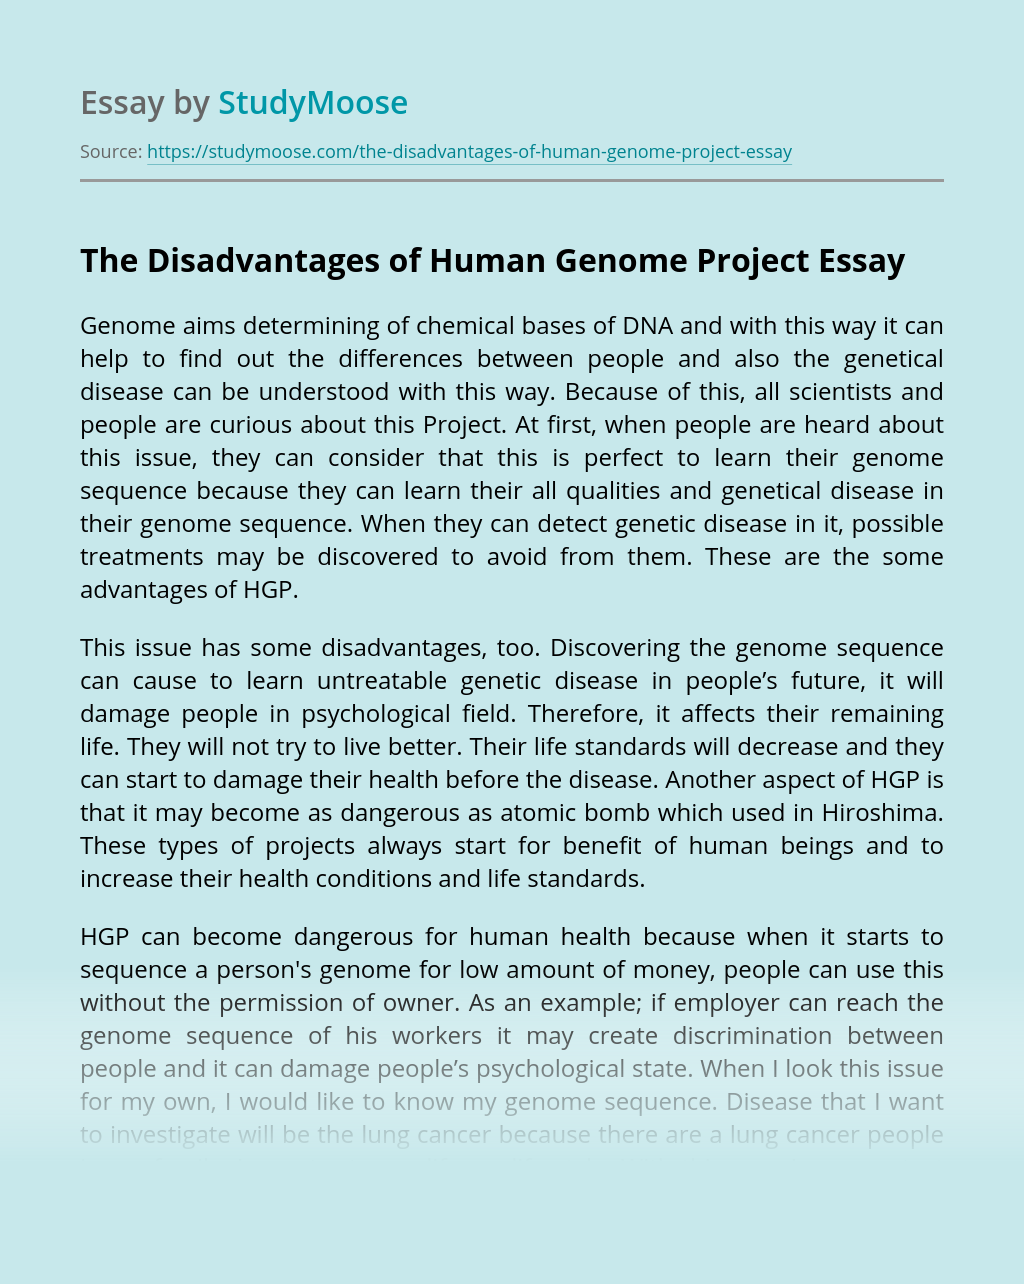 The Disadvantages of Human Genome Project